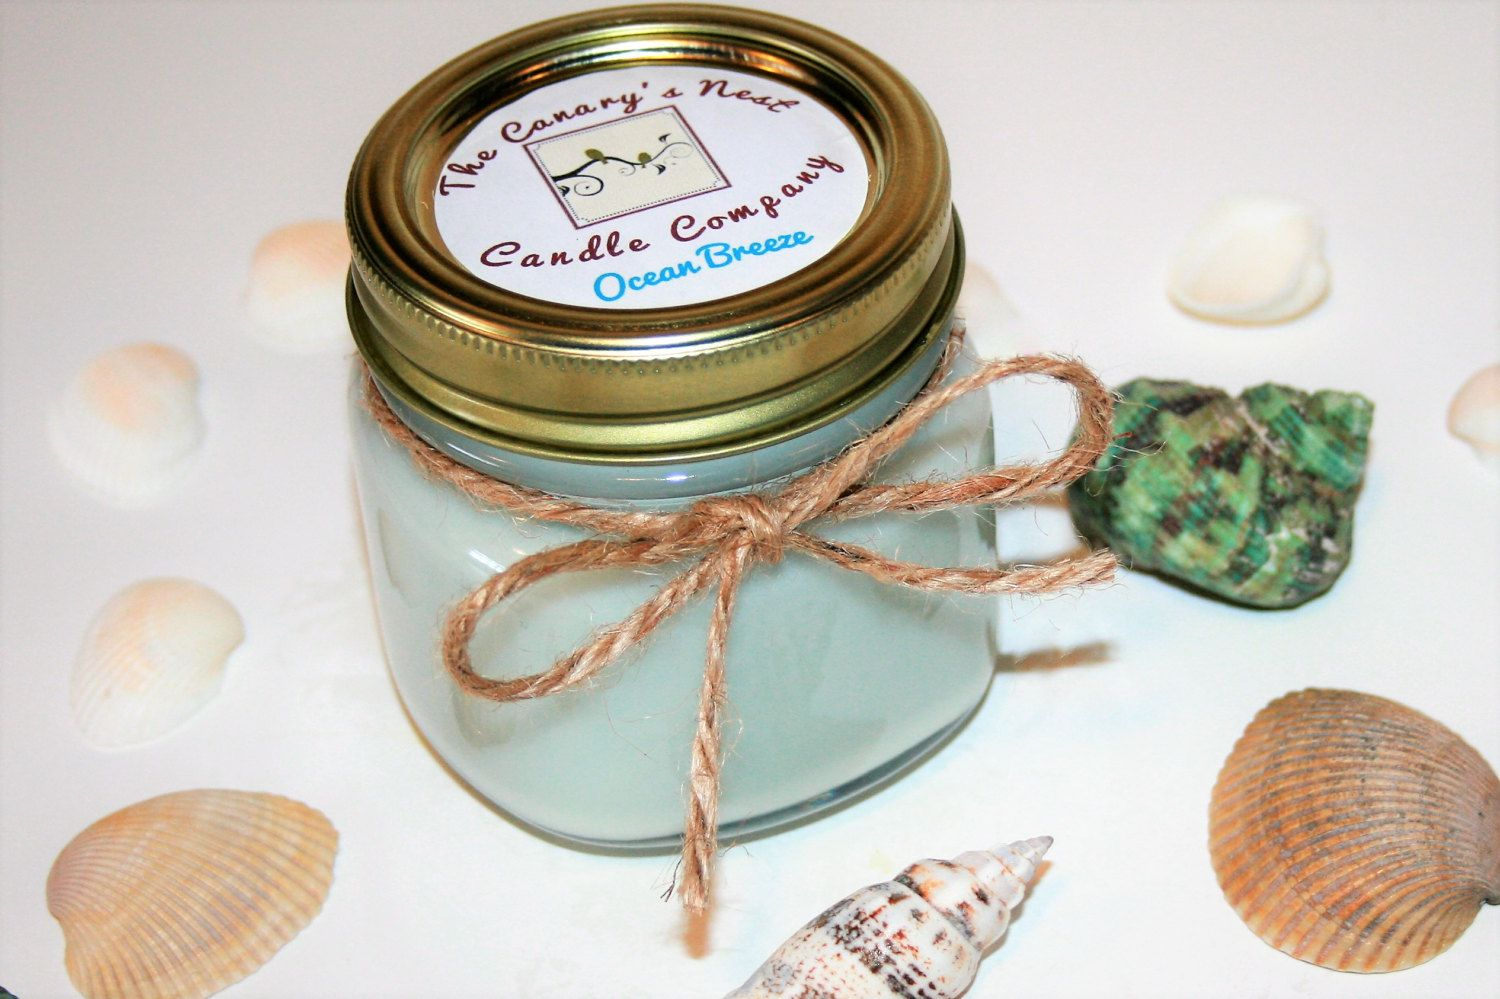 Ocean breeze soy wax candle mason jar candles soy candles clean